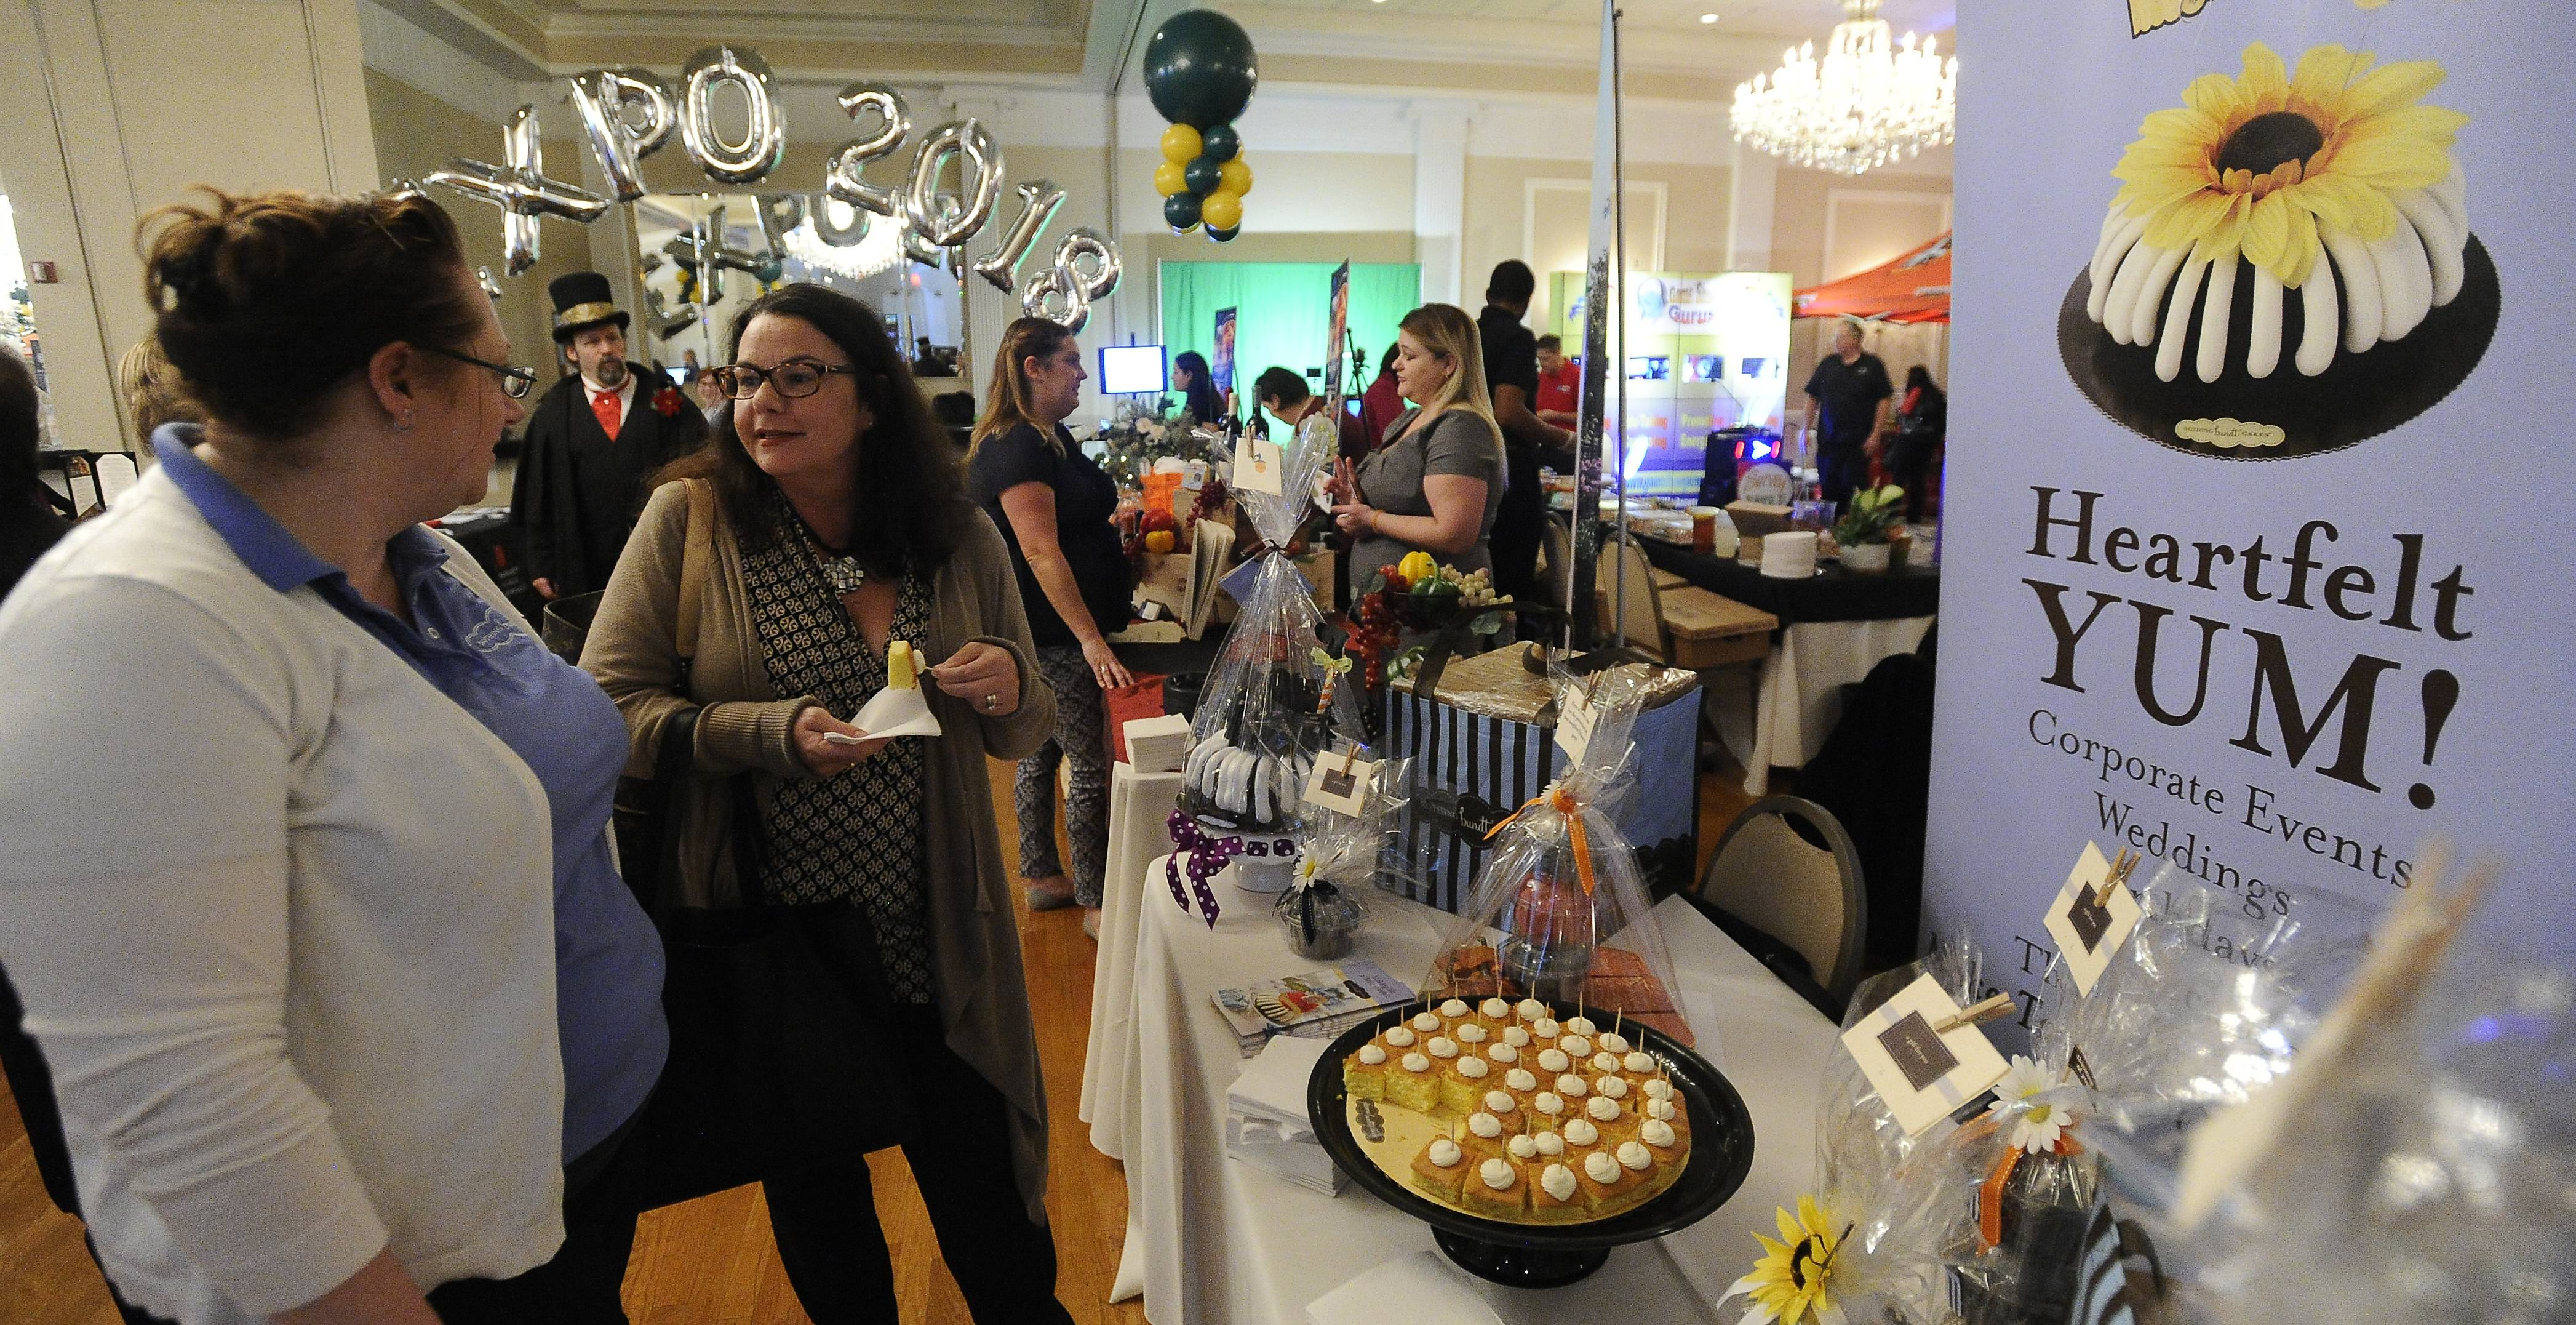 Jessica Aviles of Nothing Bundt Cakes talks with Susan Rose of Western Springs at the Daily Herald Business Ledger's DuPage Hospitality Expo.